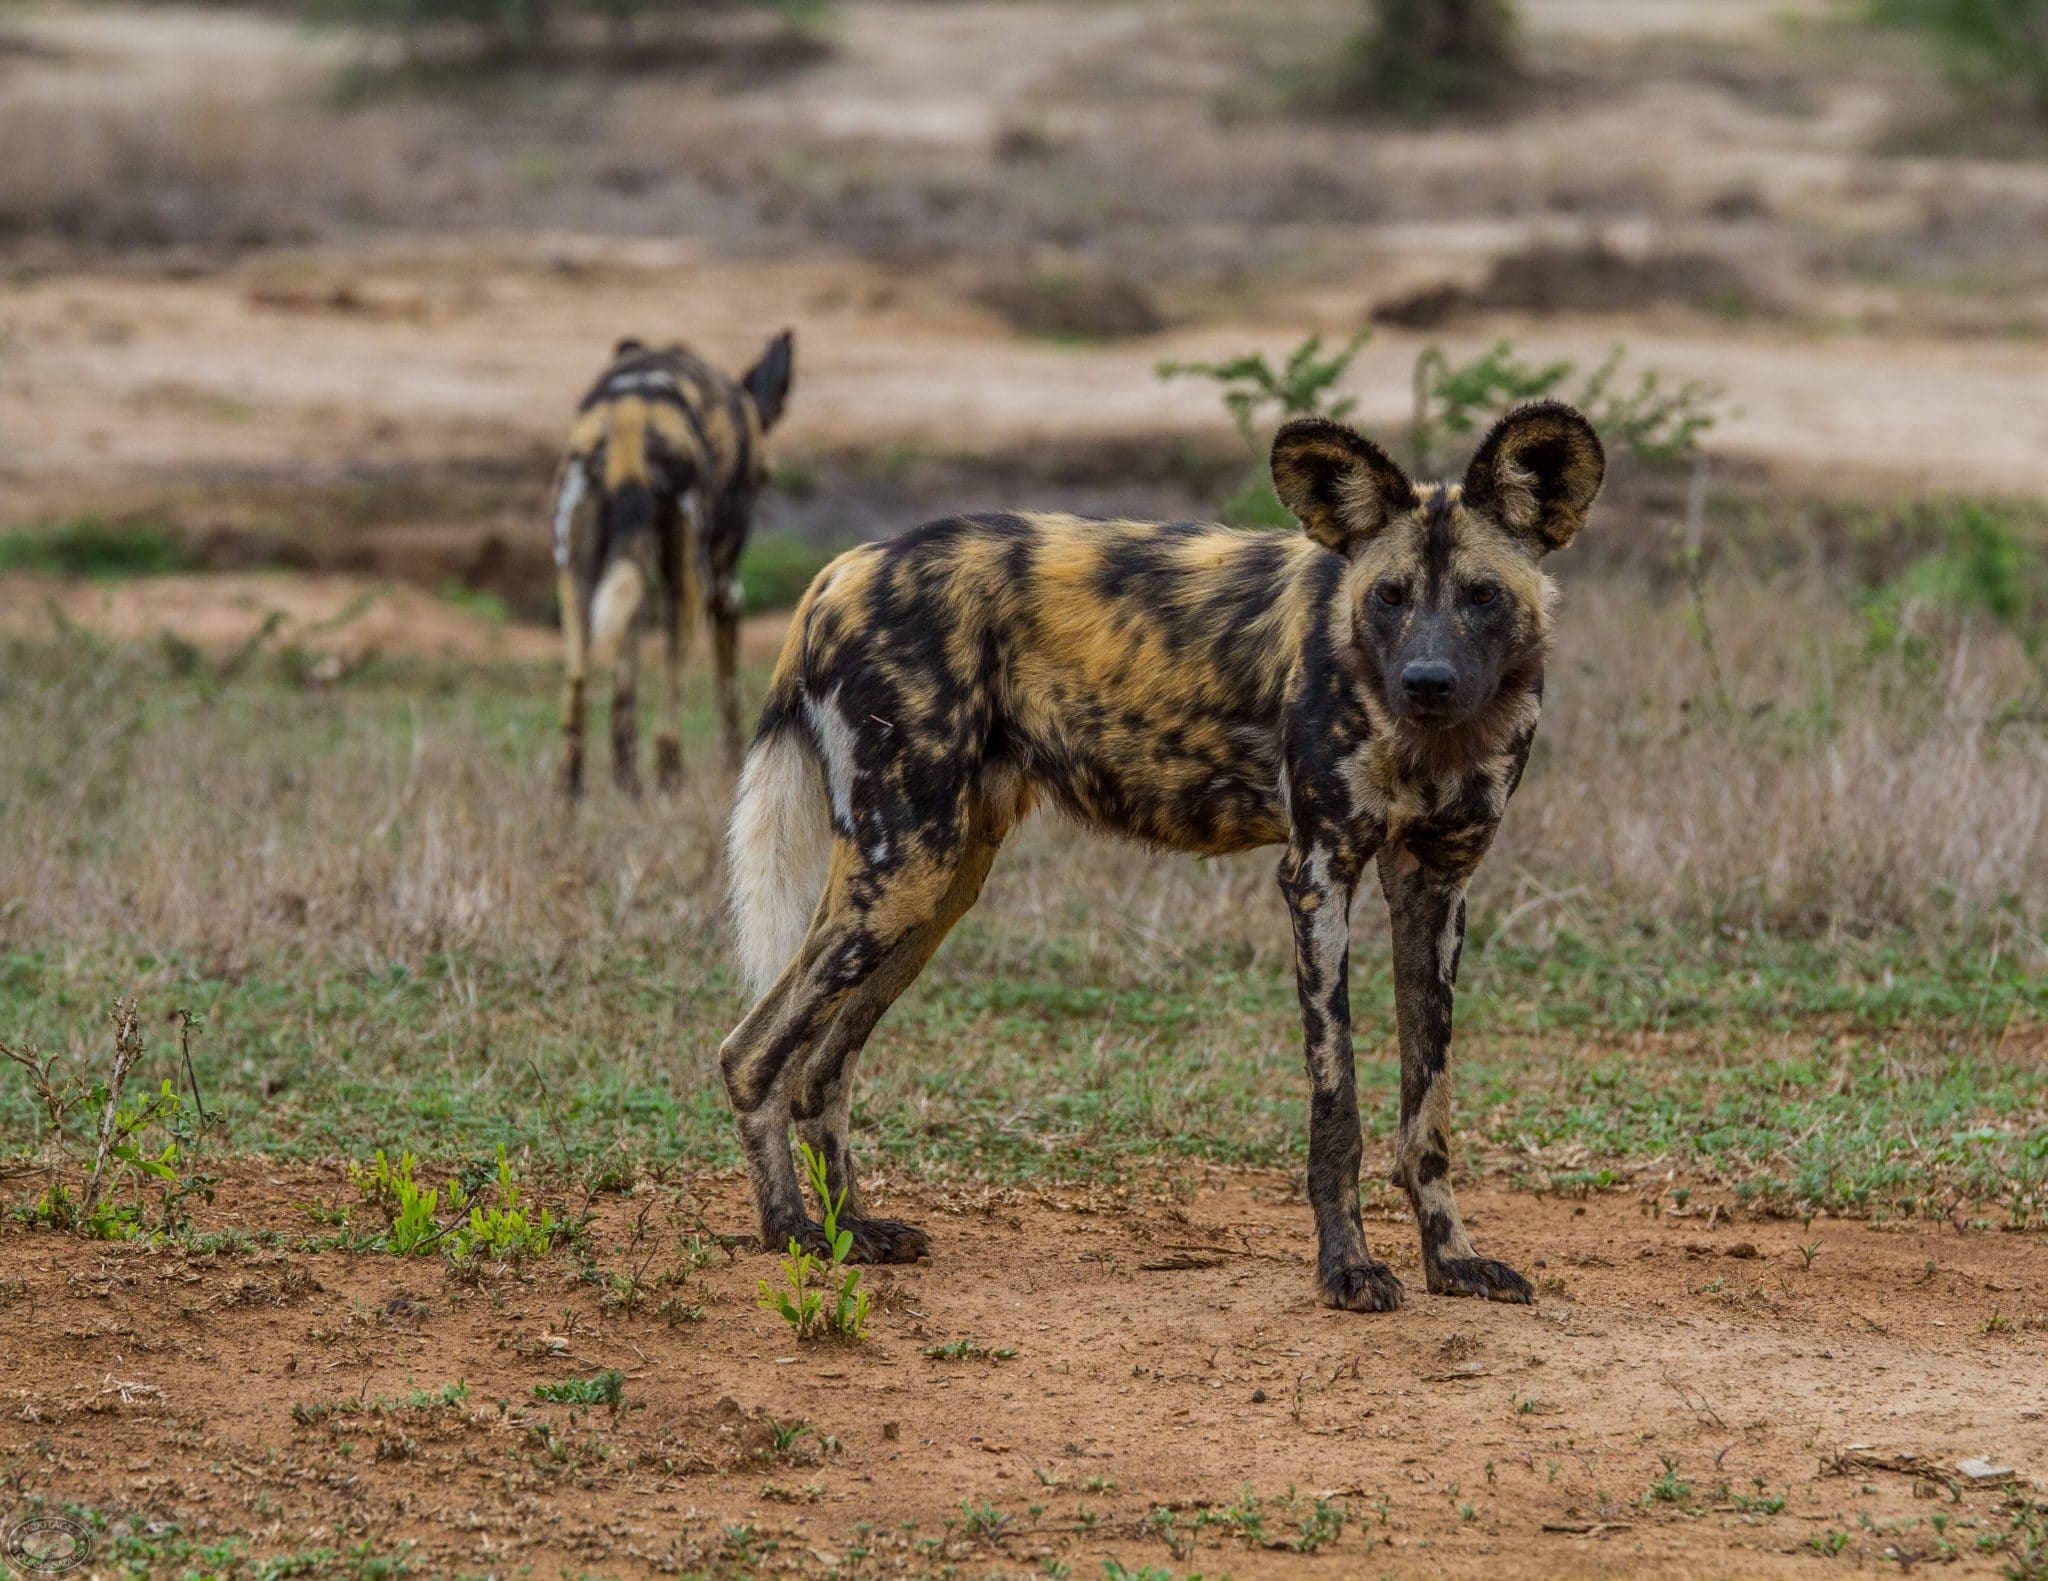 Where can you see African Wild Dogs in the Hluhluwe-Imfolozi Park, sontuli area